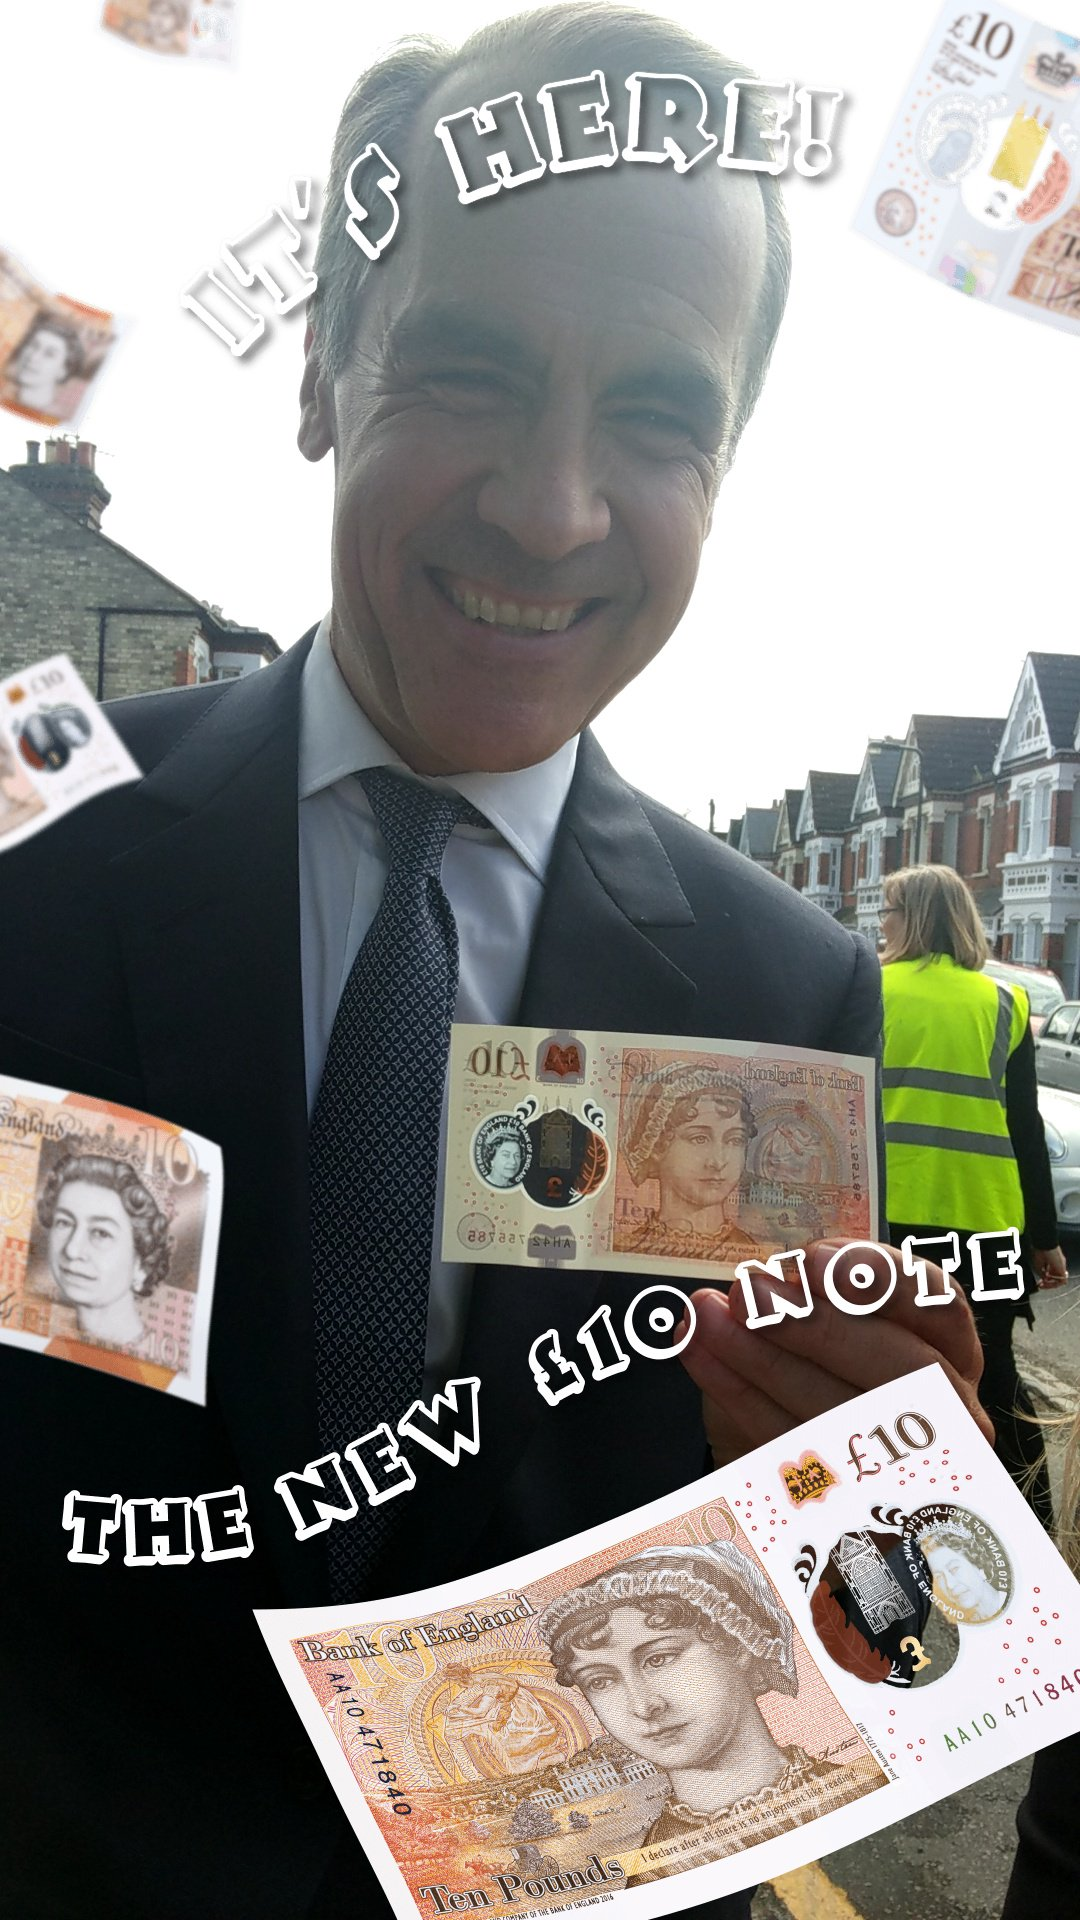 Here's Bank of England Governor Mark Carney with the #NewTenPoundNote Snapchat filter. The new £10: out today. https://t.co/34WM9BaMkJ